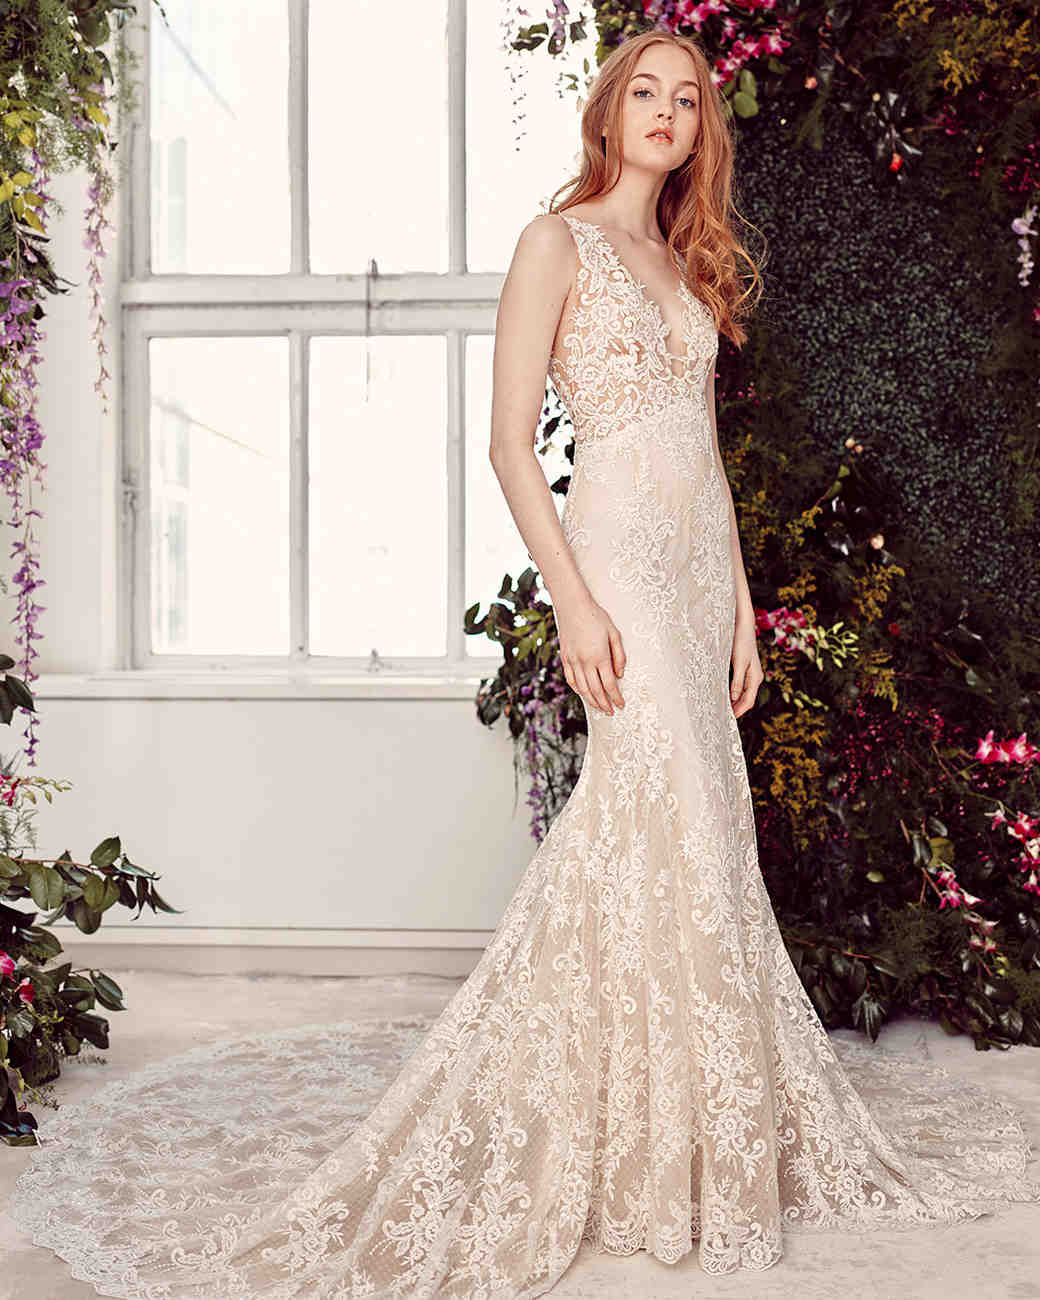 alyne by rita vinieris v-neck lace overlay wedding dress spring 2020